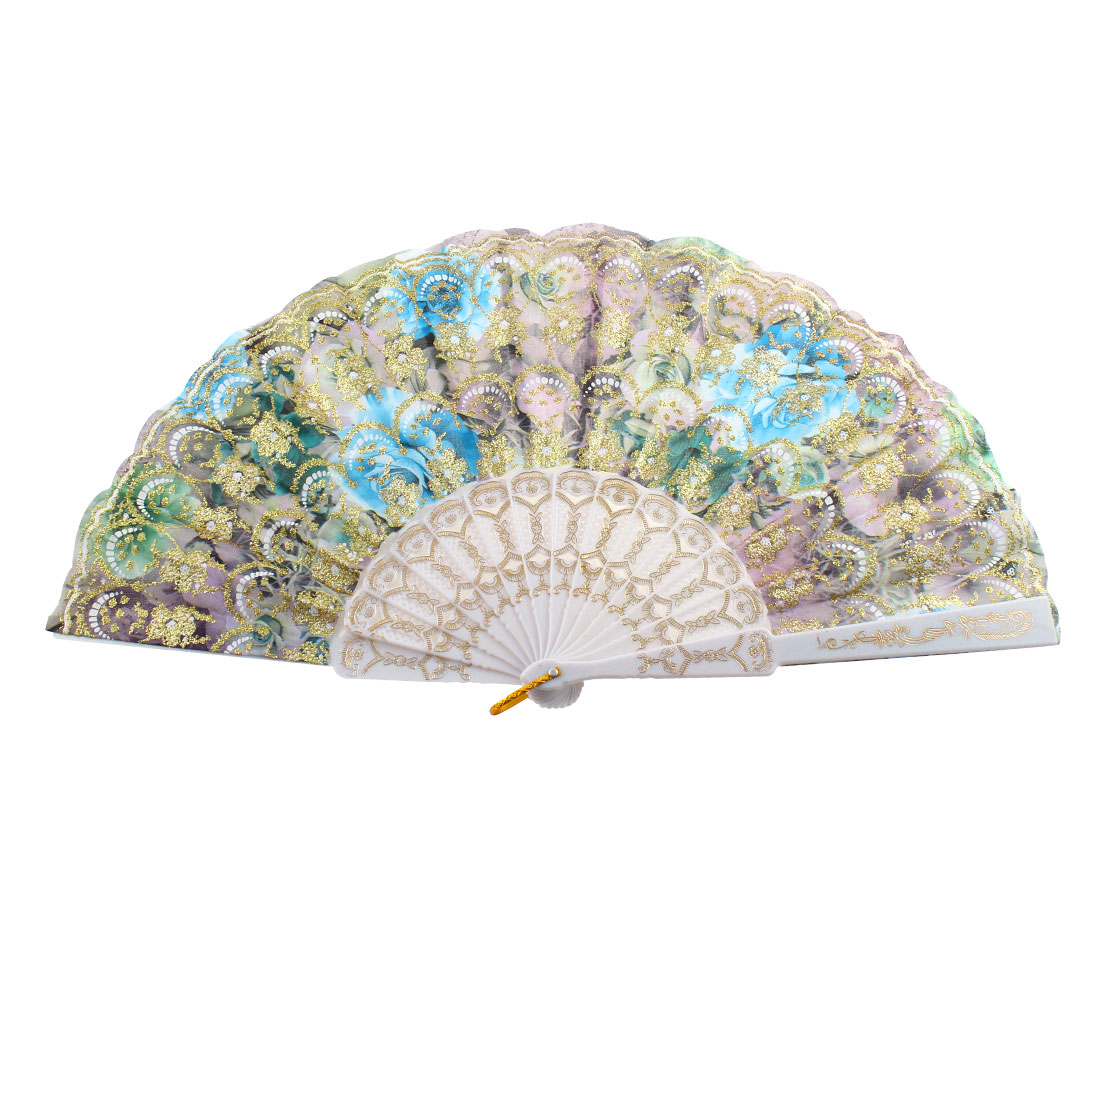 Hanging D Ring Glittery Powder Accent Floral Print Dancing Hand Fan Gold Tone